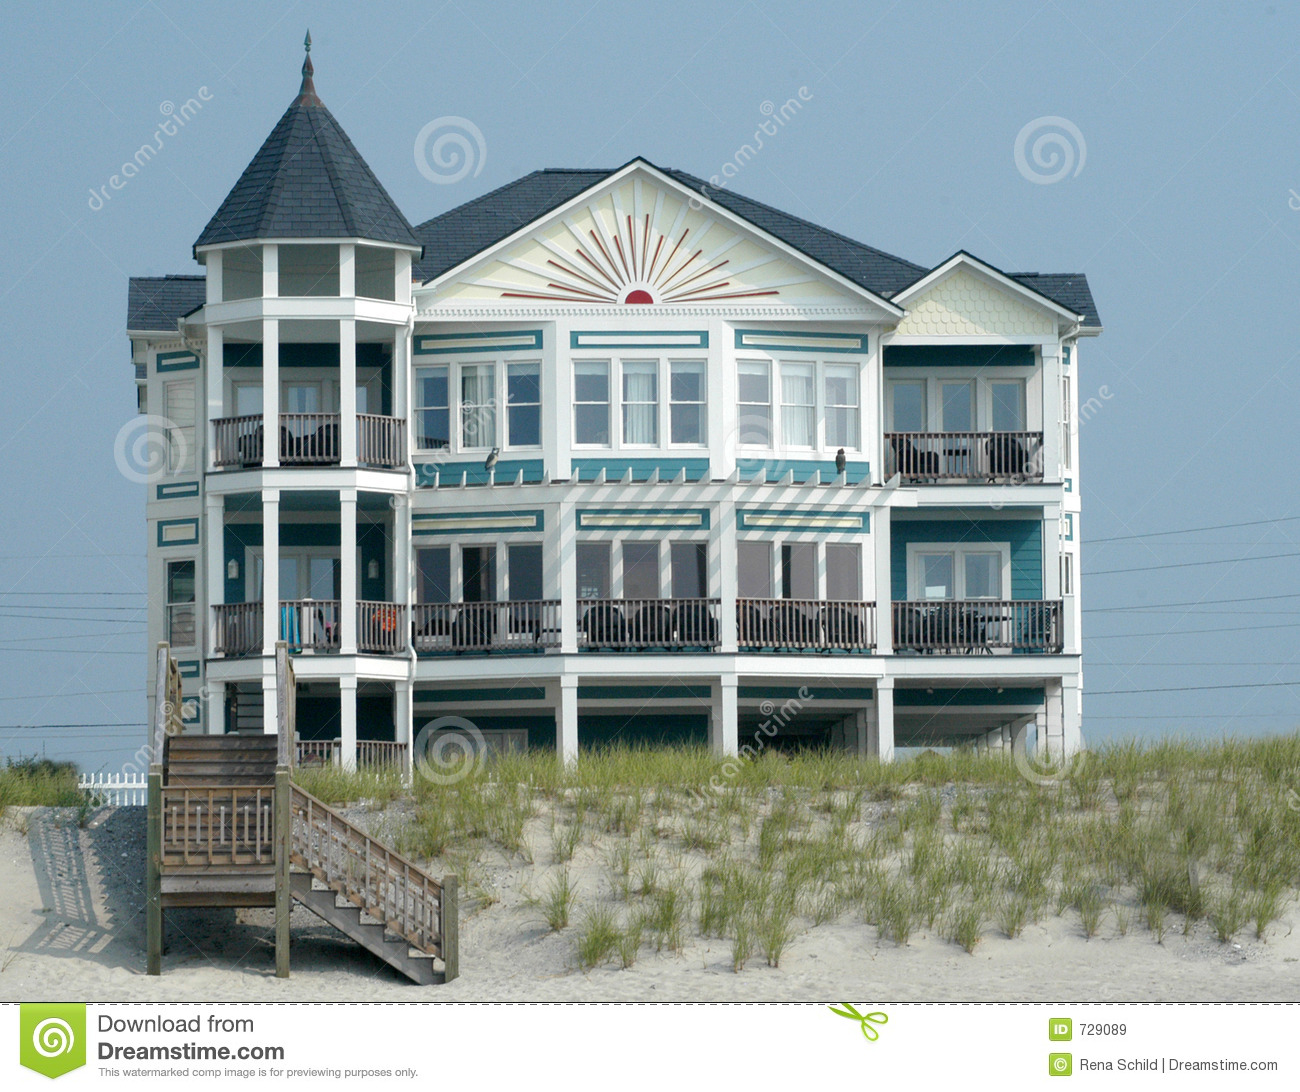 Luxury Beach House: Luxury Beach House Royalty Free Stock Images